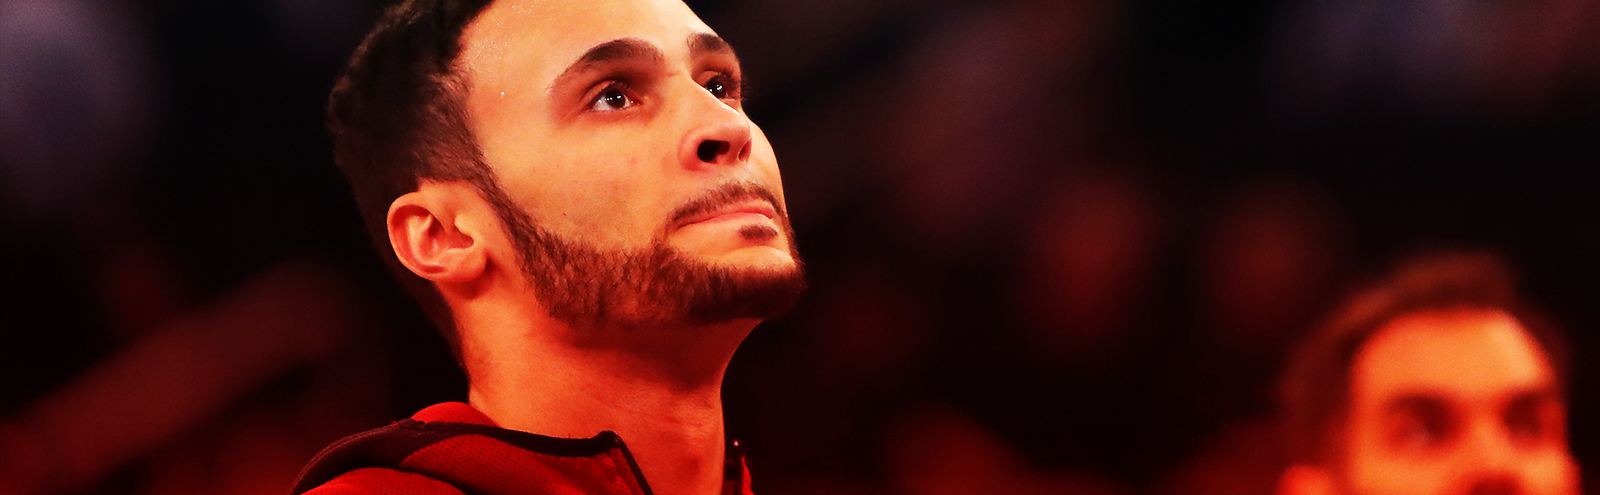 How Larry Nance Jr. Found His Voice By Helping Others